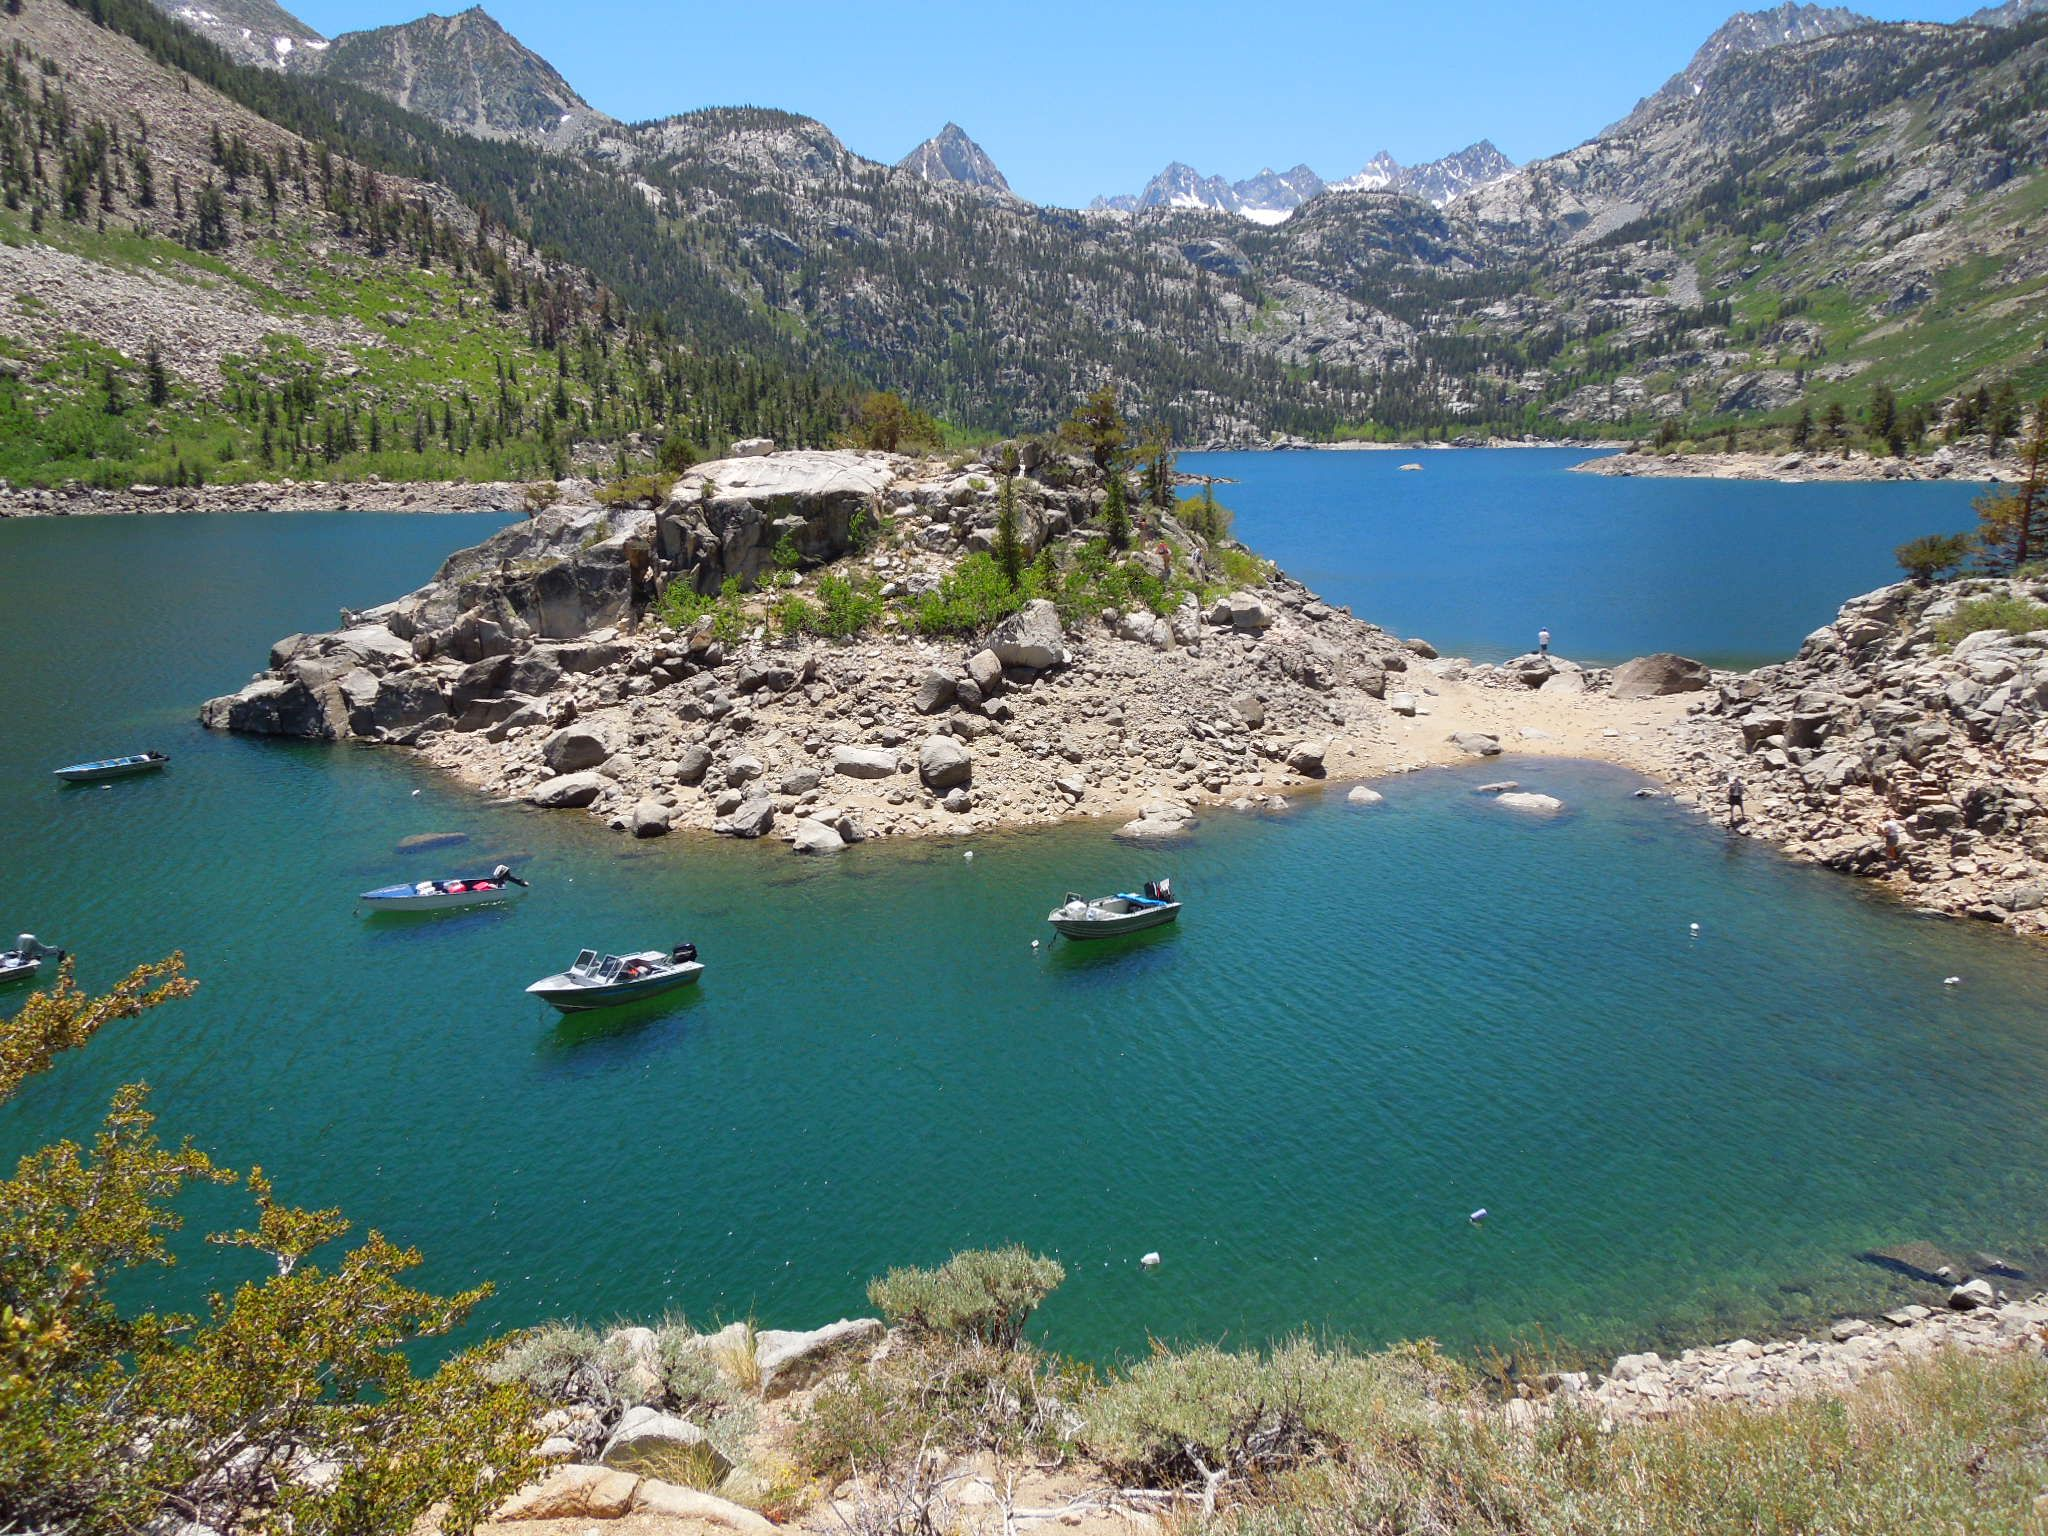 Orange County Ca Homes For Sale West Coast Vacation Bishop California Sierra Nevada Mountains